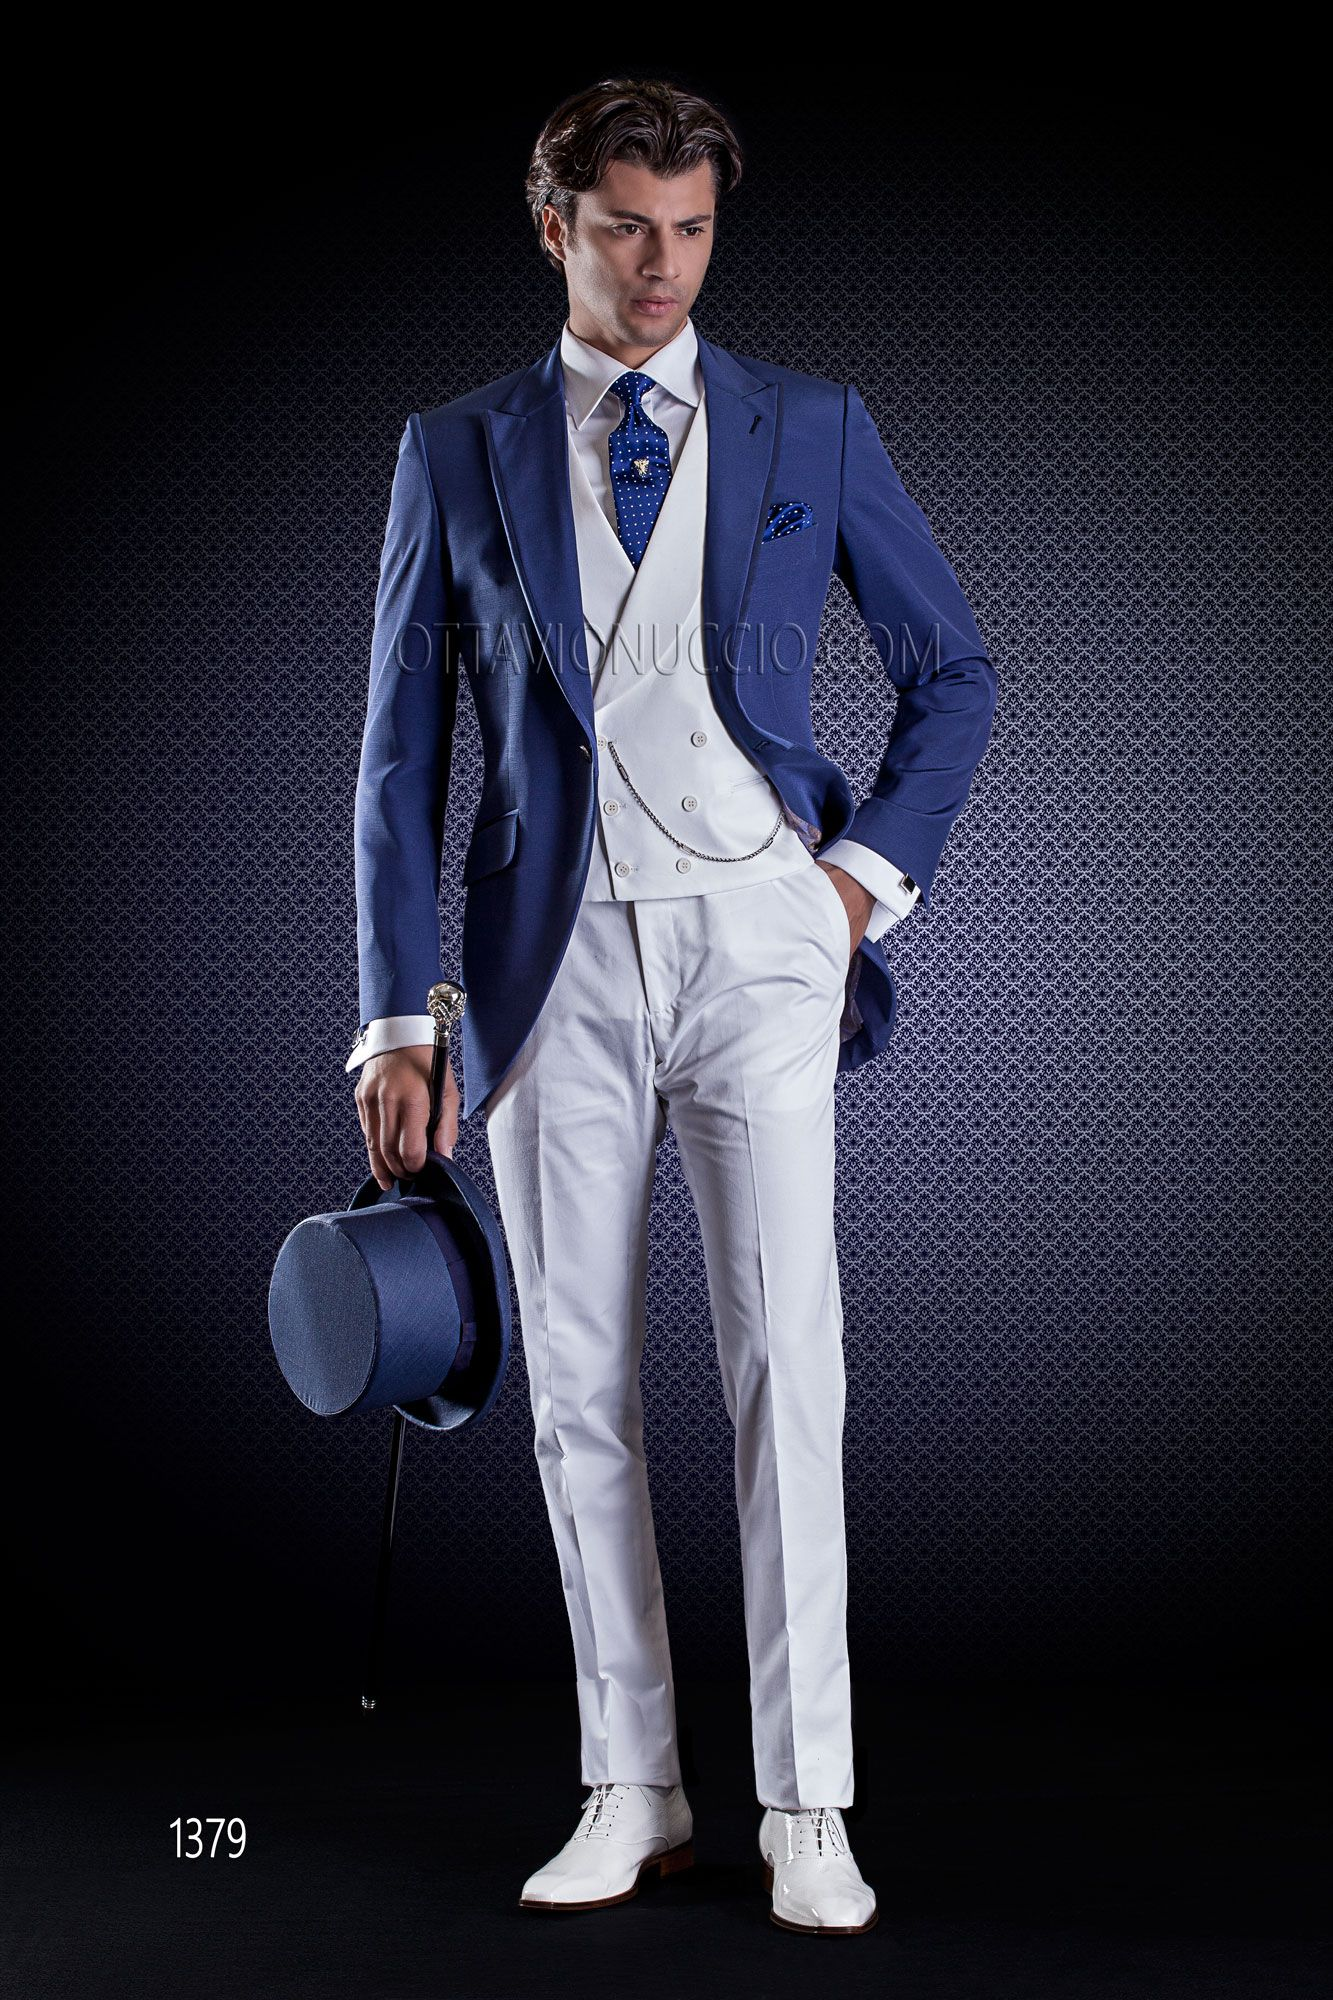 Electric blue tuxedo jacket with white pants and double-breasted vest